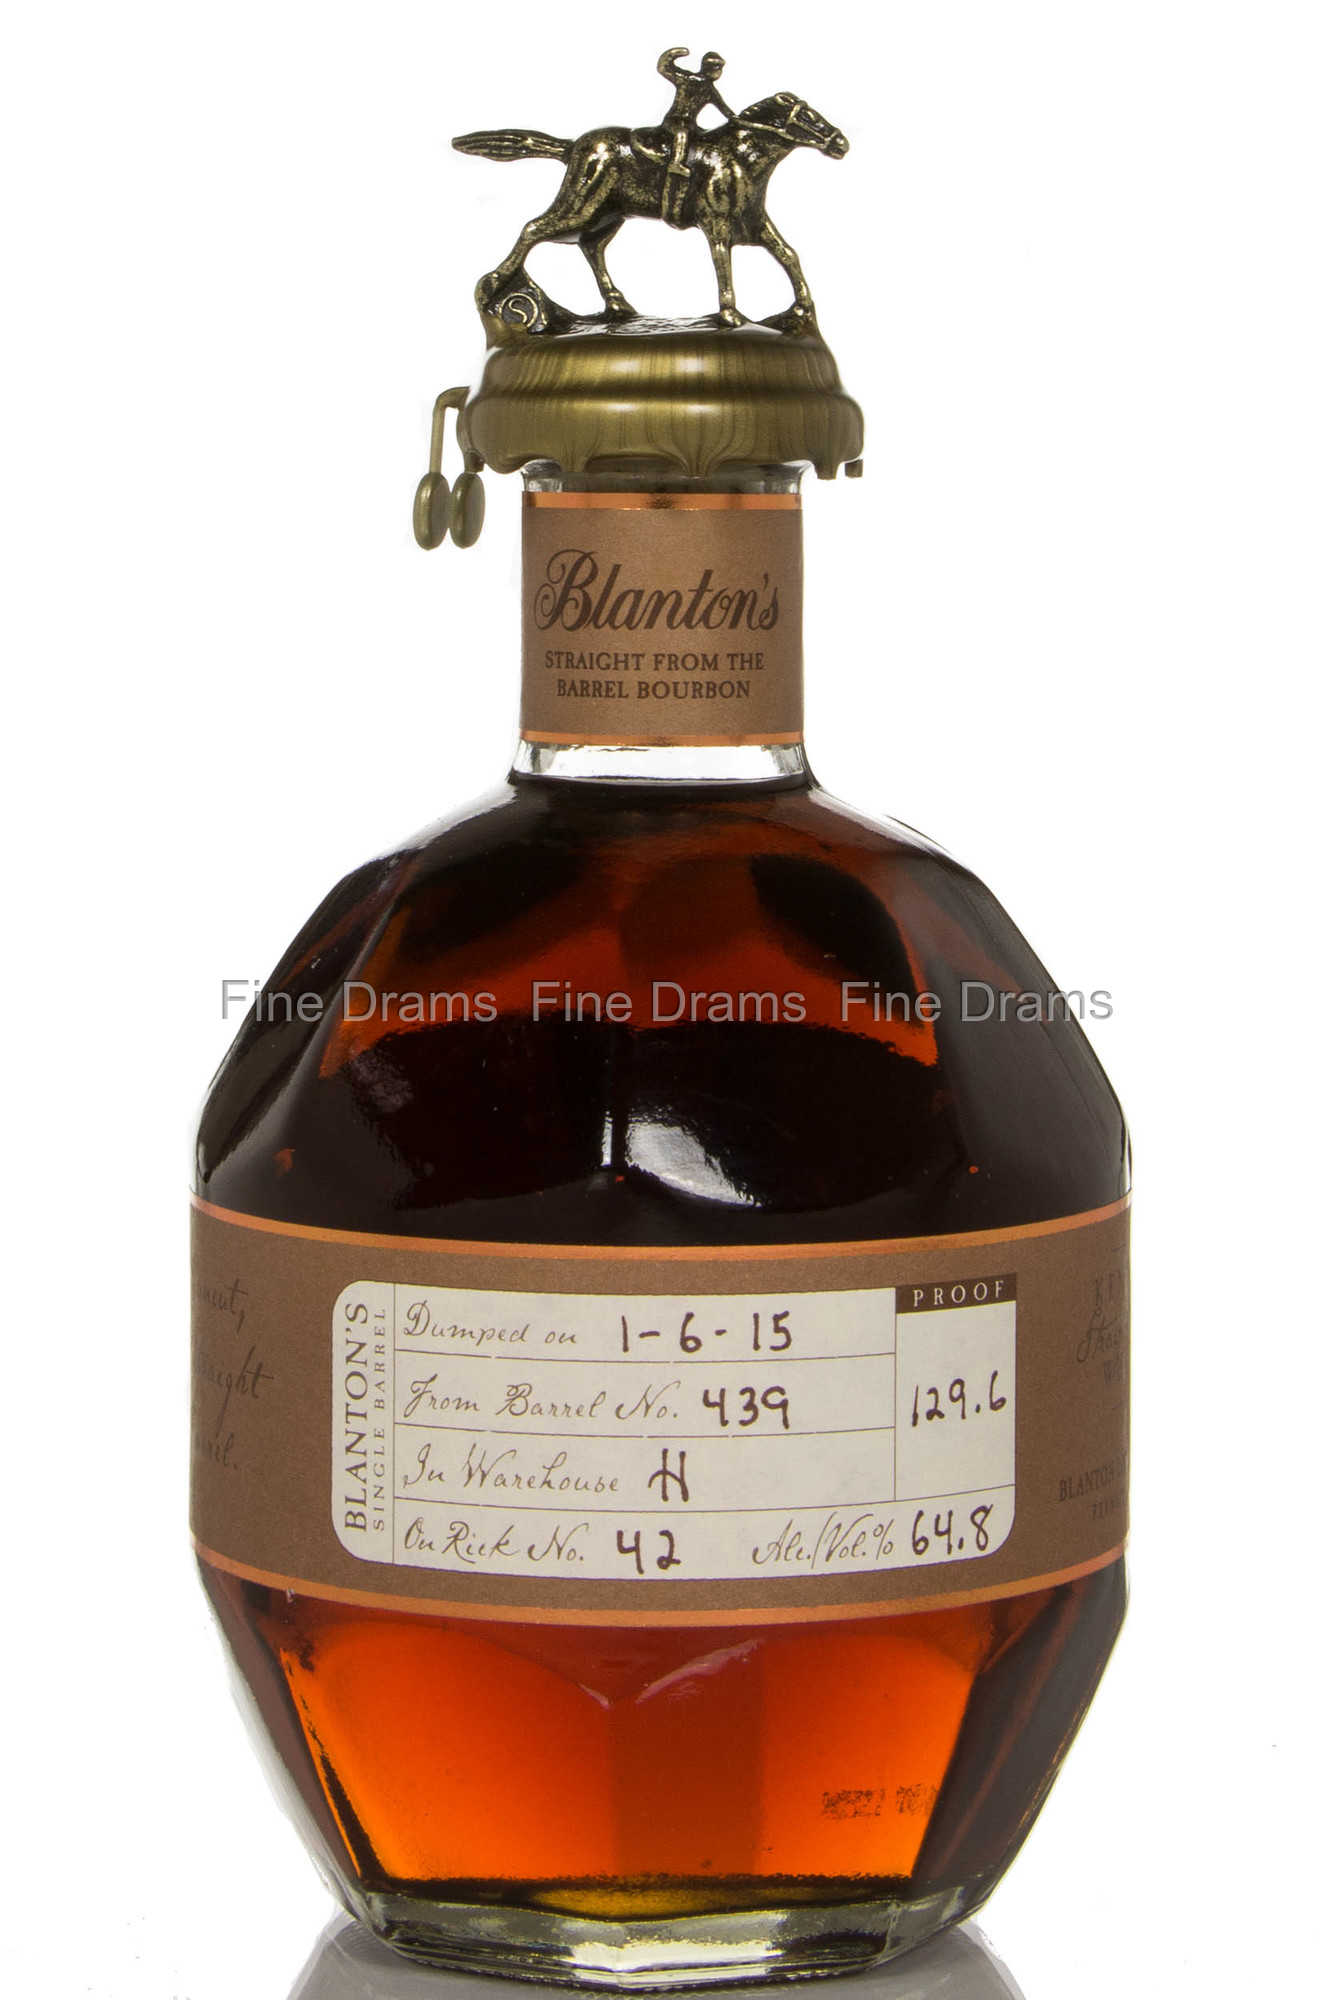 Straight From The Factory With Clint Black S Guitar: Blanton's Straight From The Barrel (Barrel #263) Single